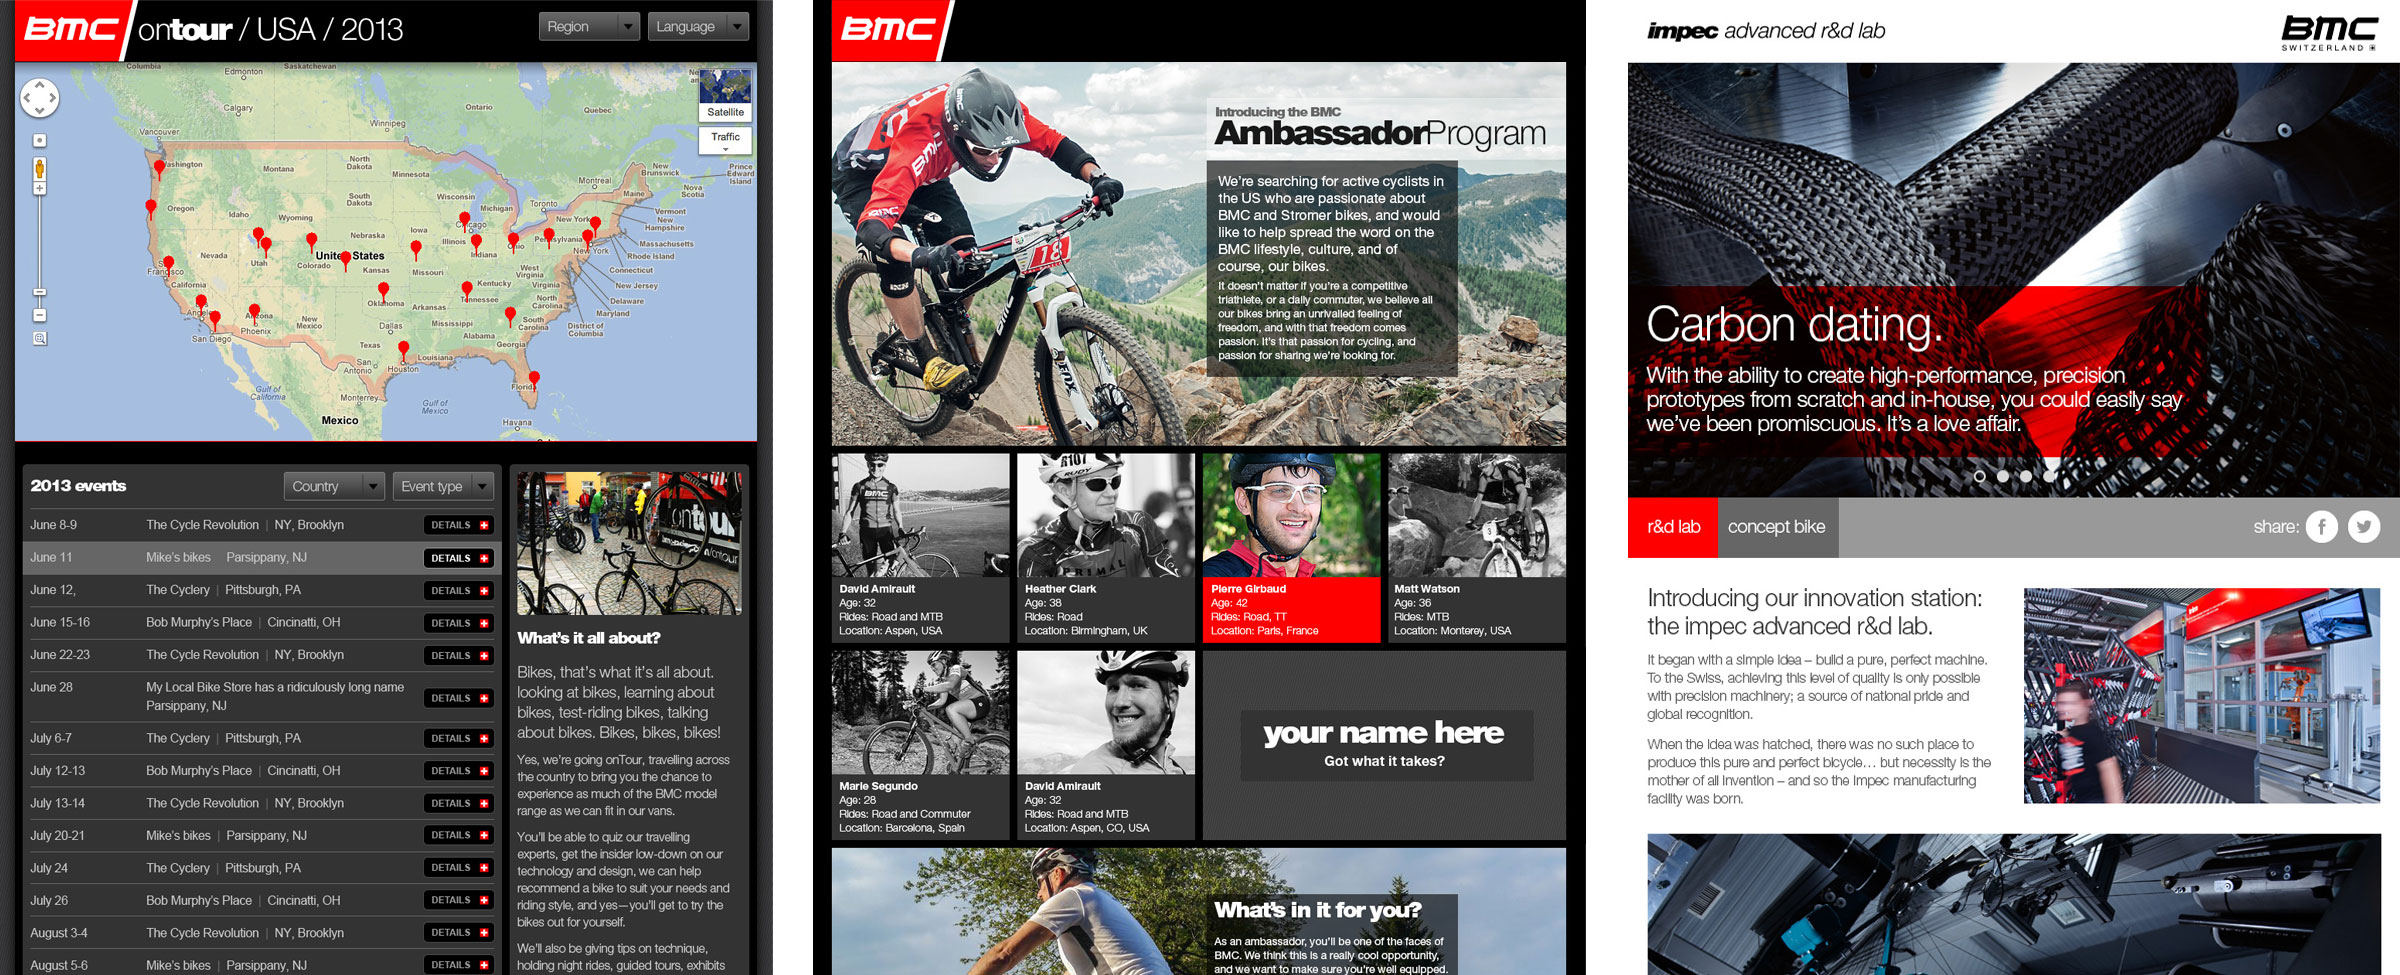 BMC Ride Experience, Ambassador and Impec microsites